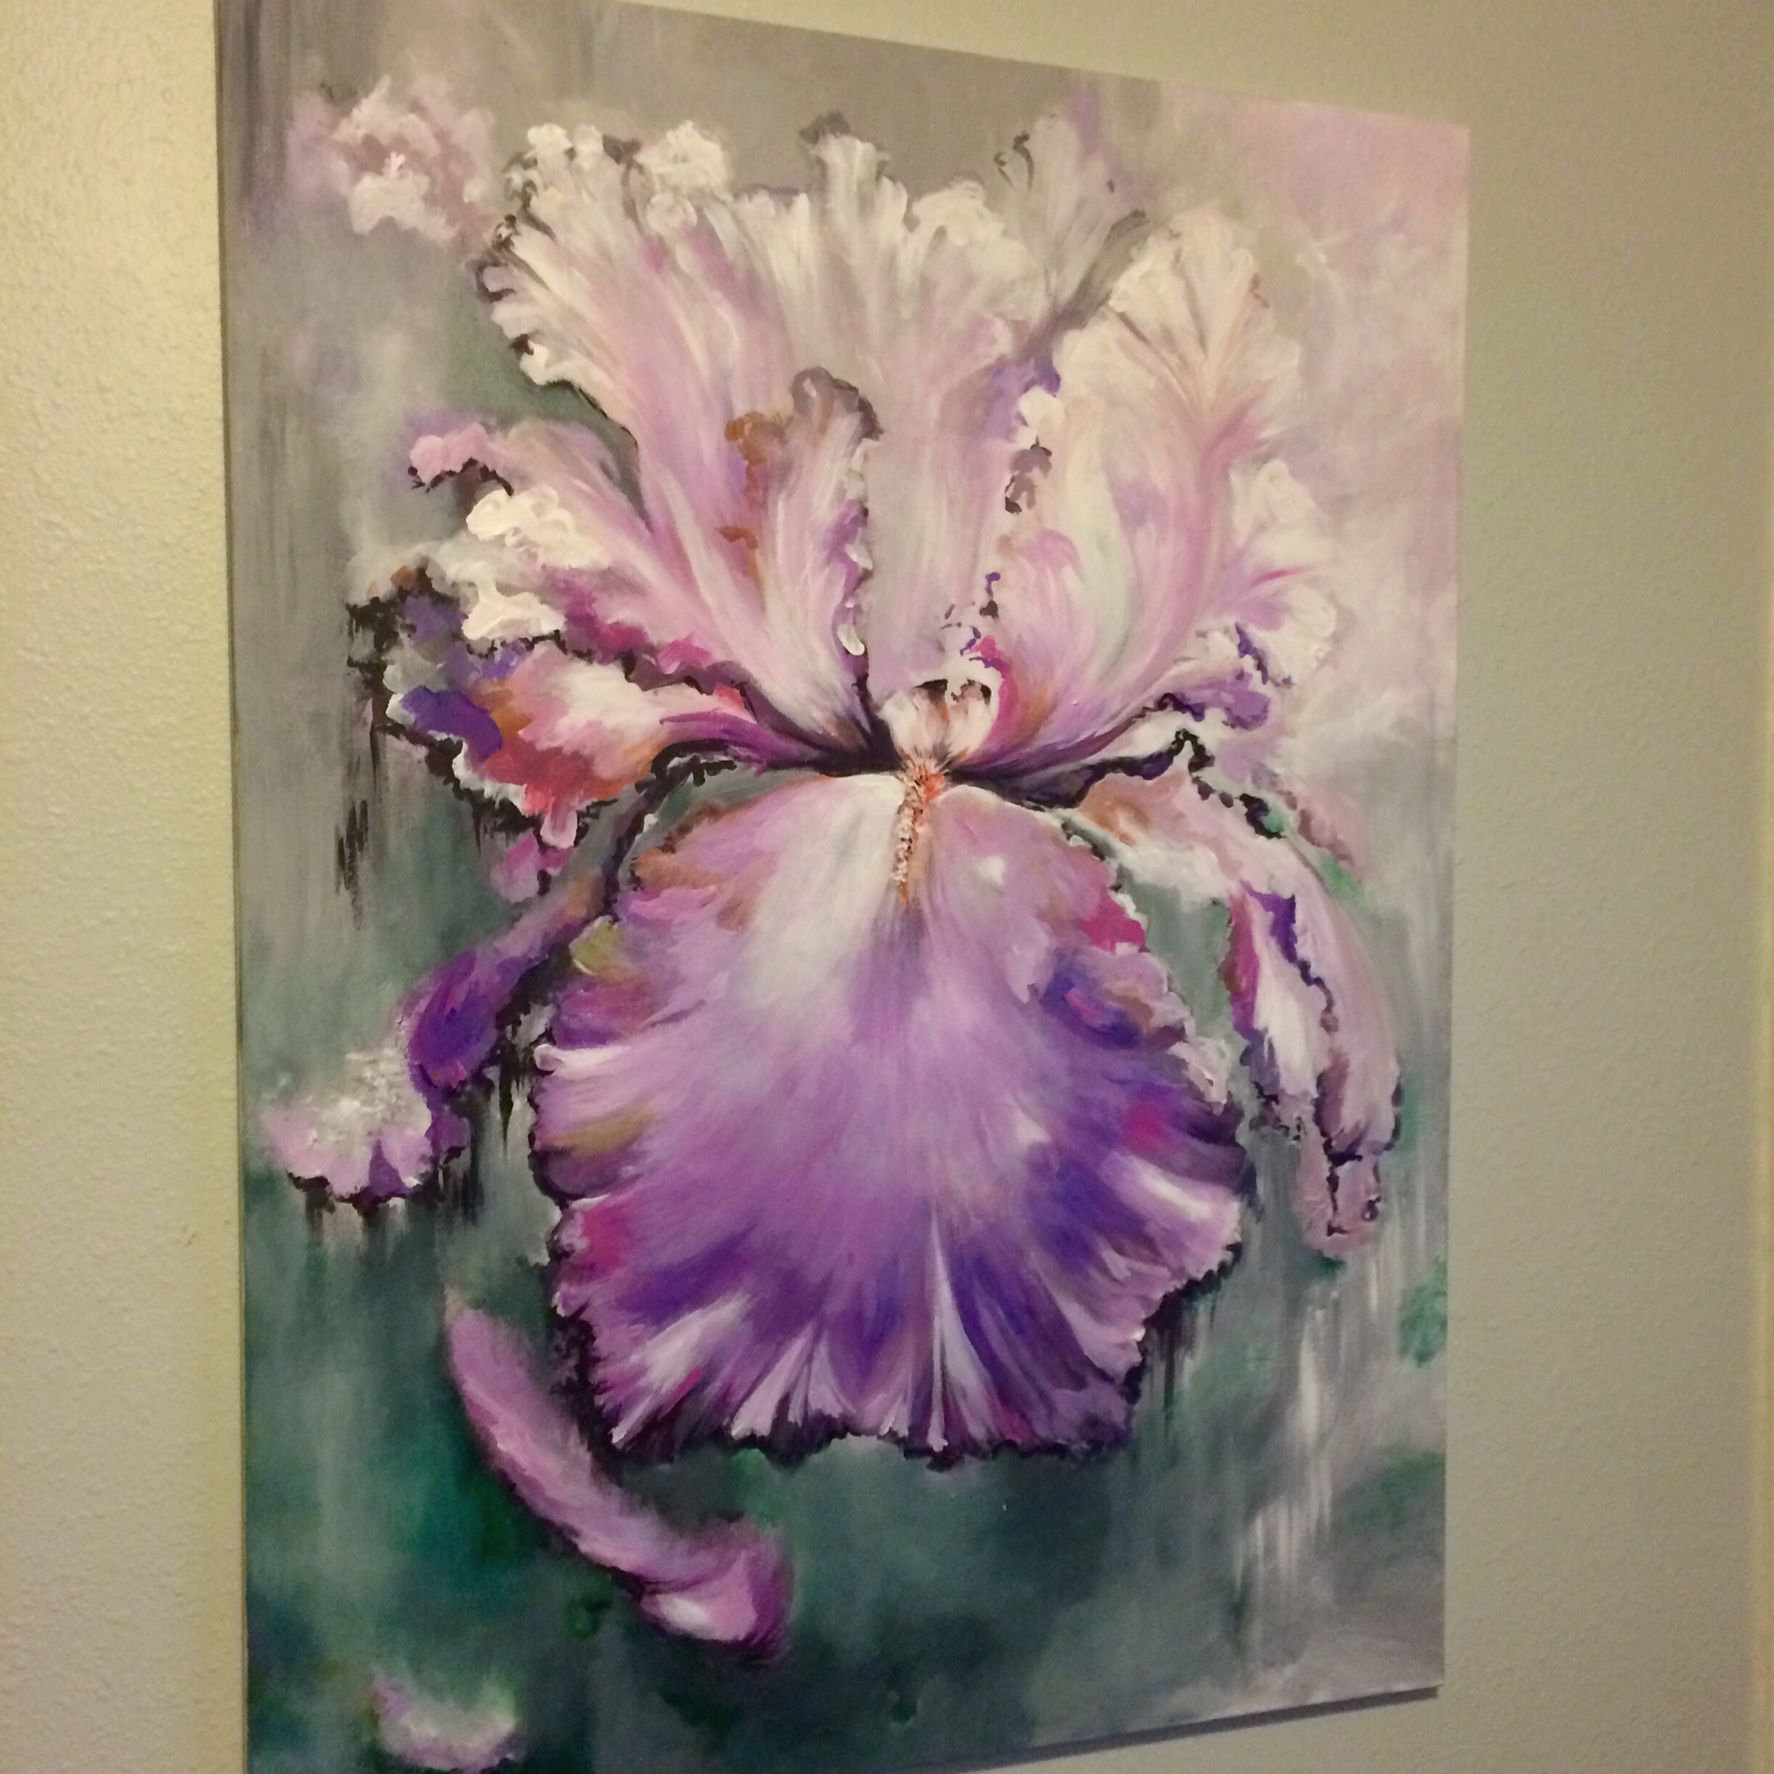 Iris in shades of pink purple and grays depicting and